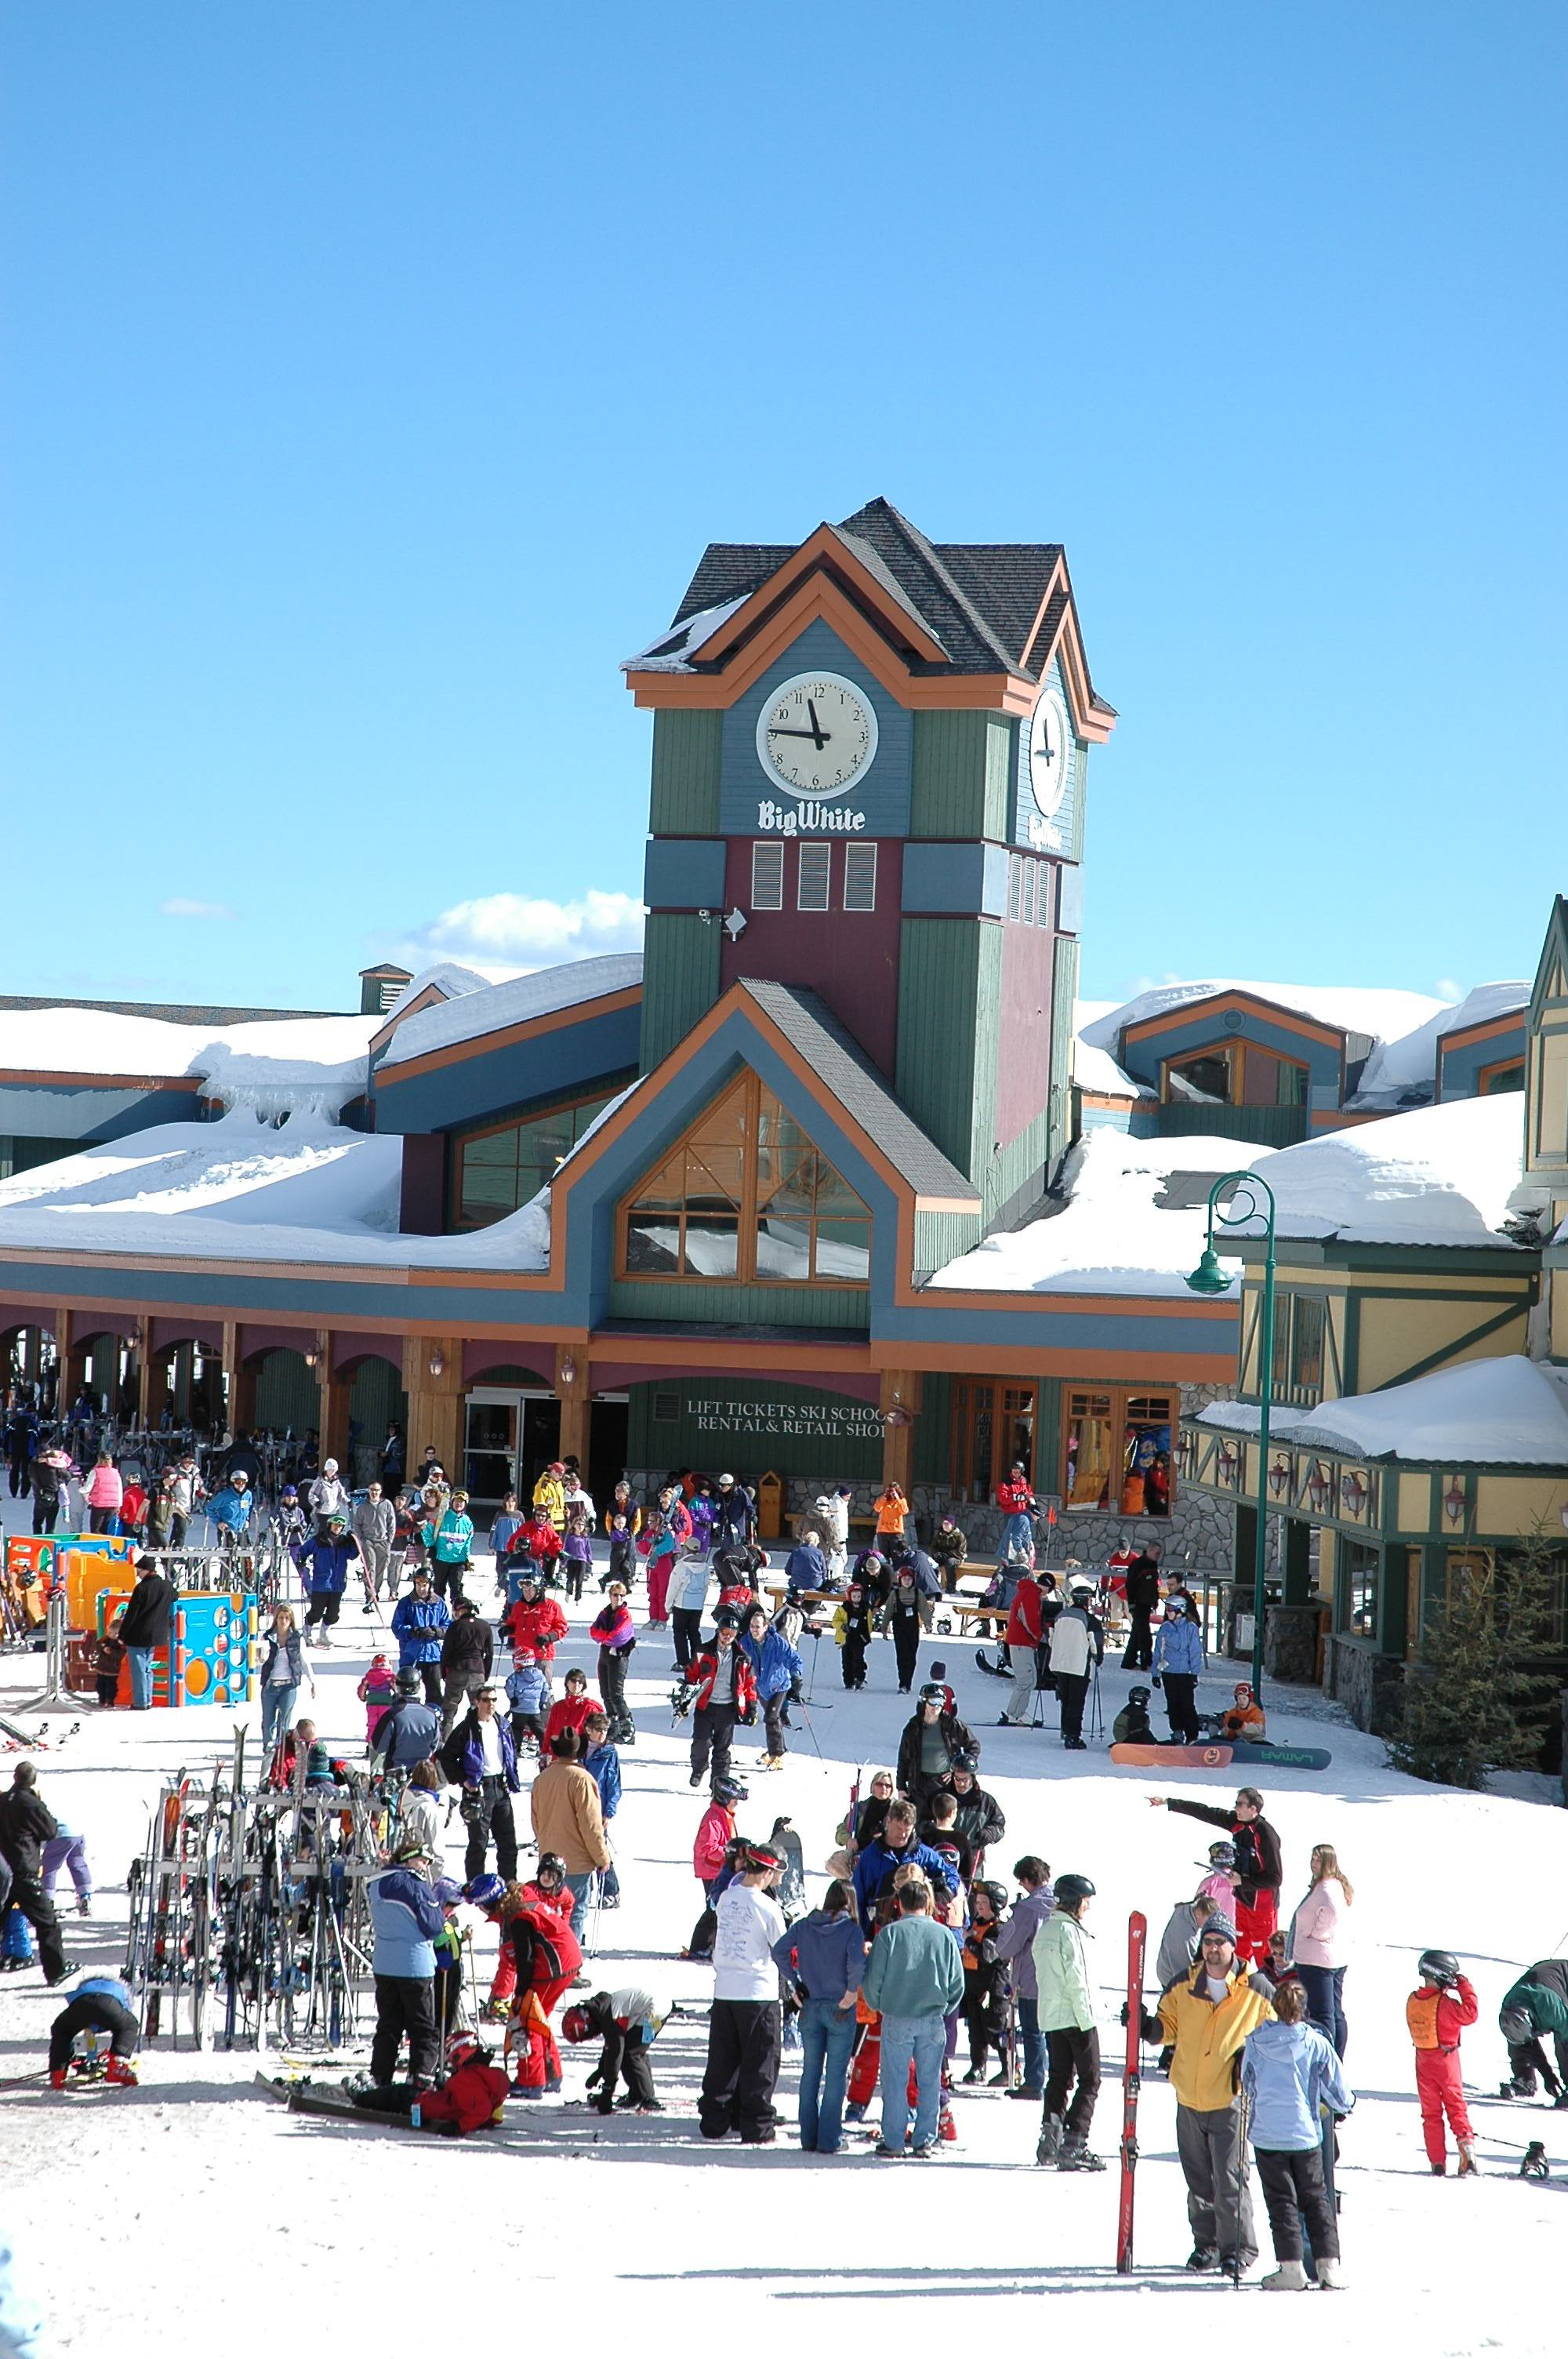 Clock tower at a ski resort with skiers all around